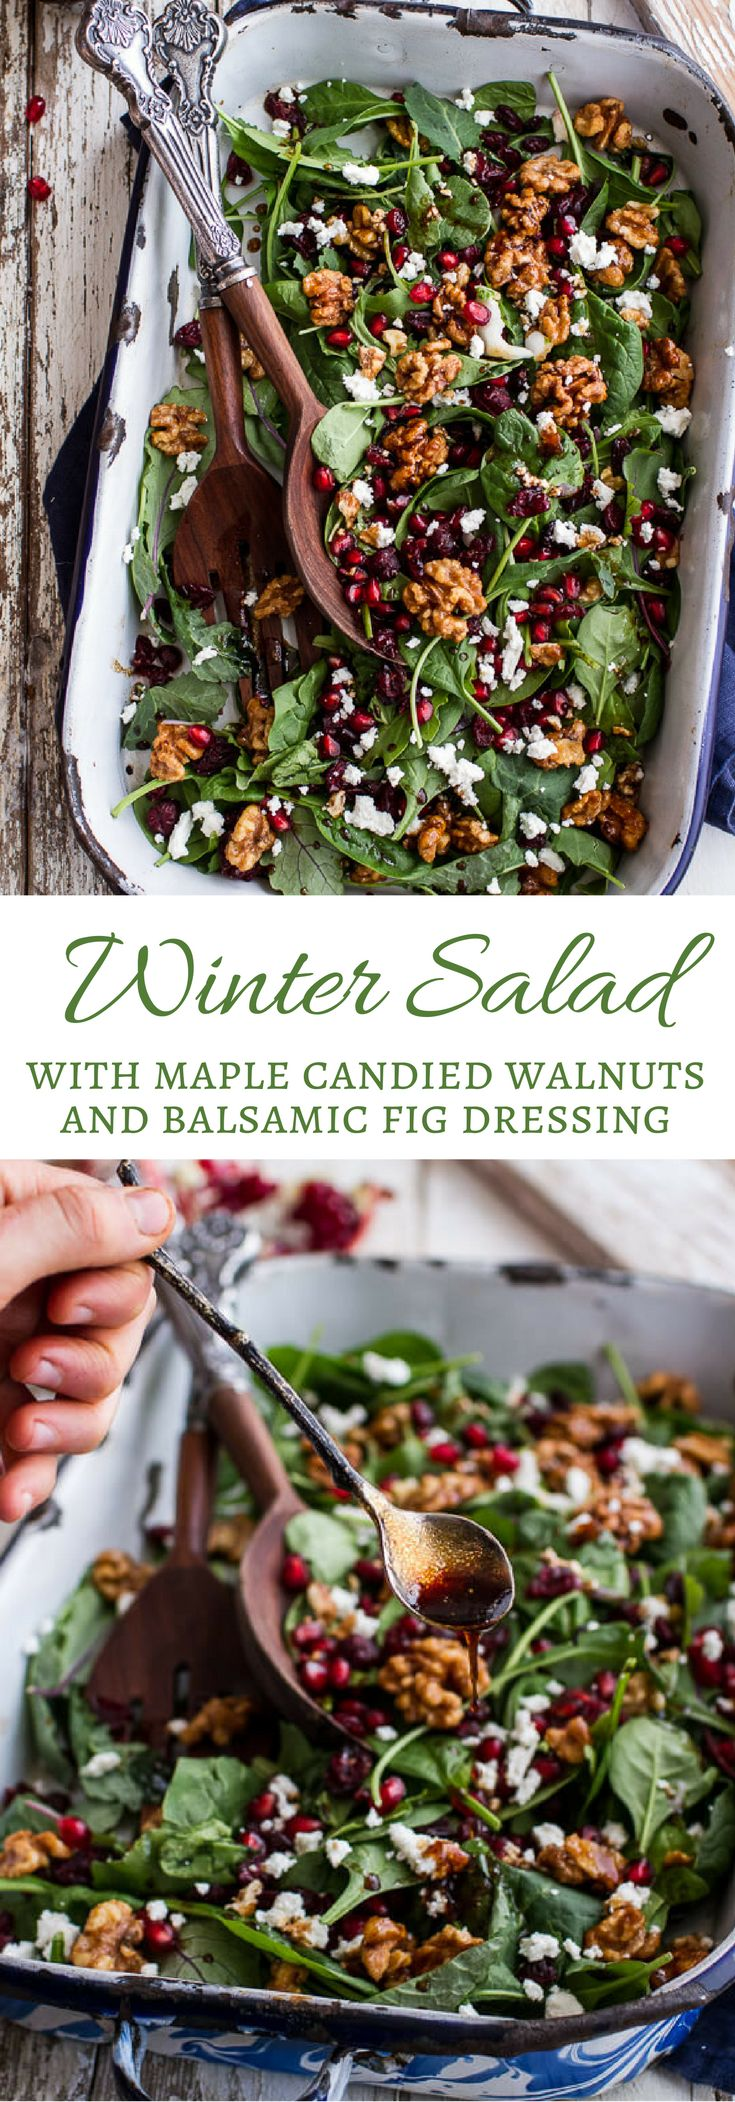 Winter Salad with Maple Candied Walnuts and Balsamic Fig Dressing | halfbakedharvest.com @hbharvest